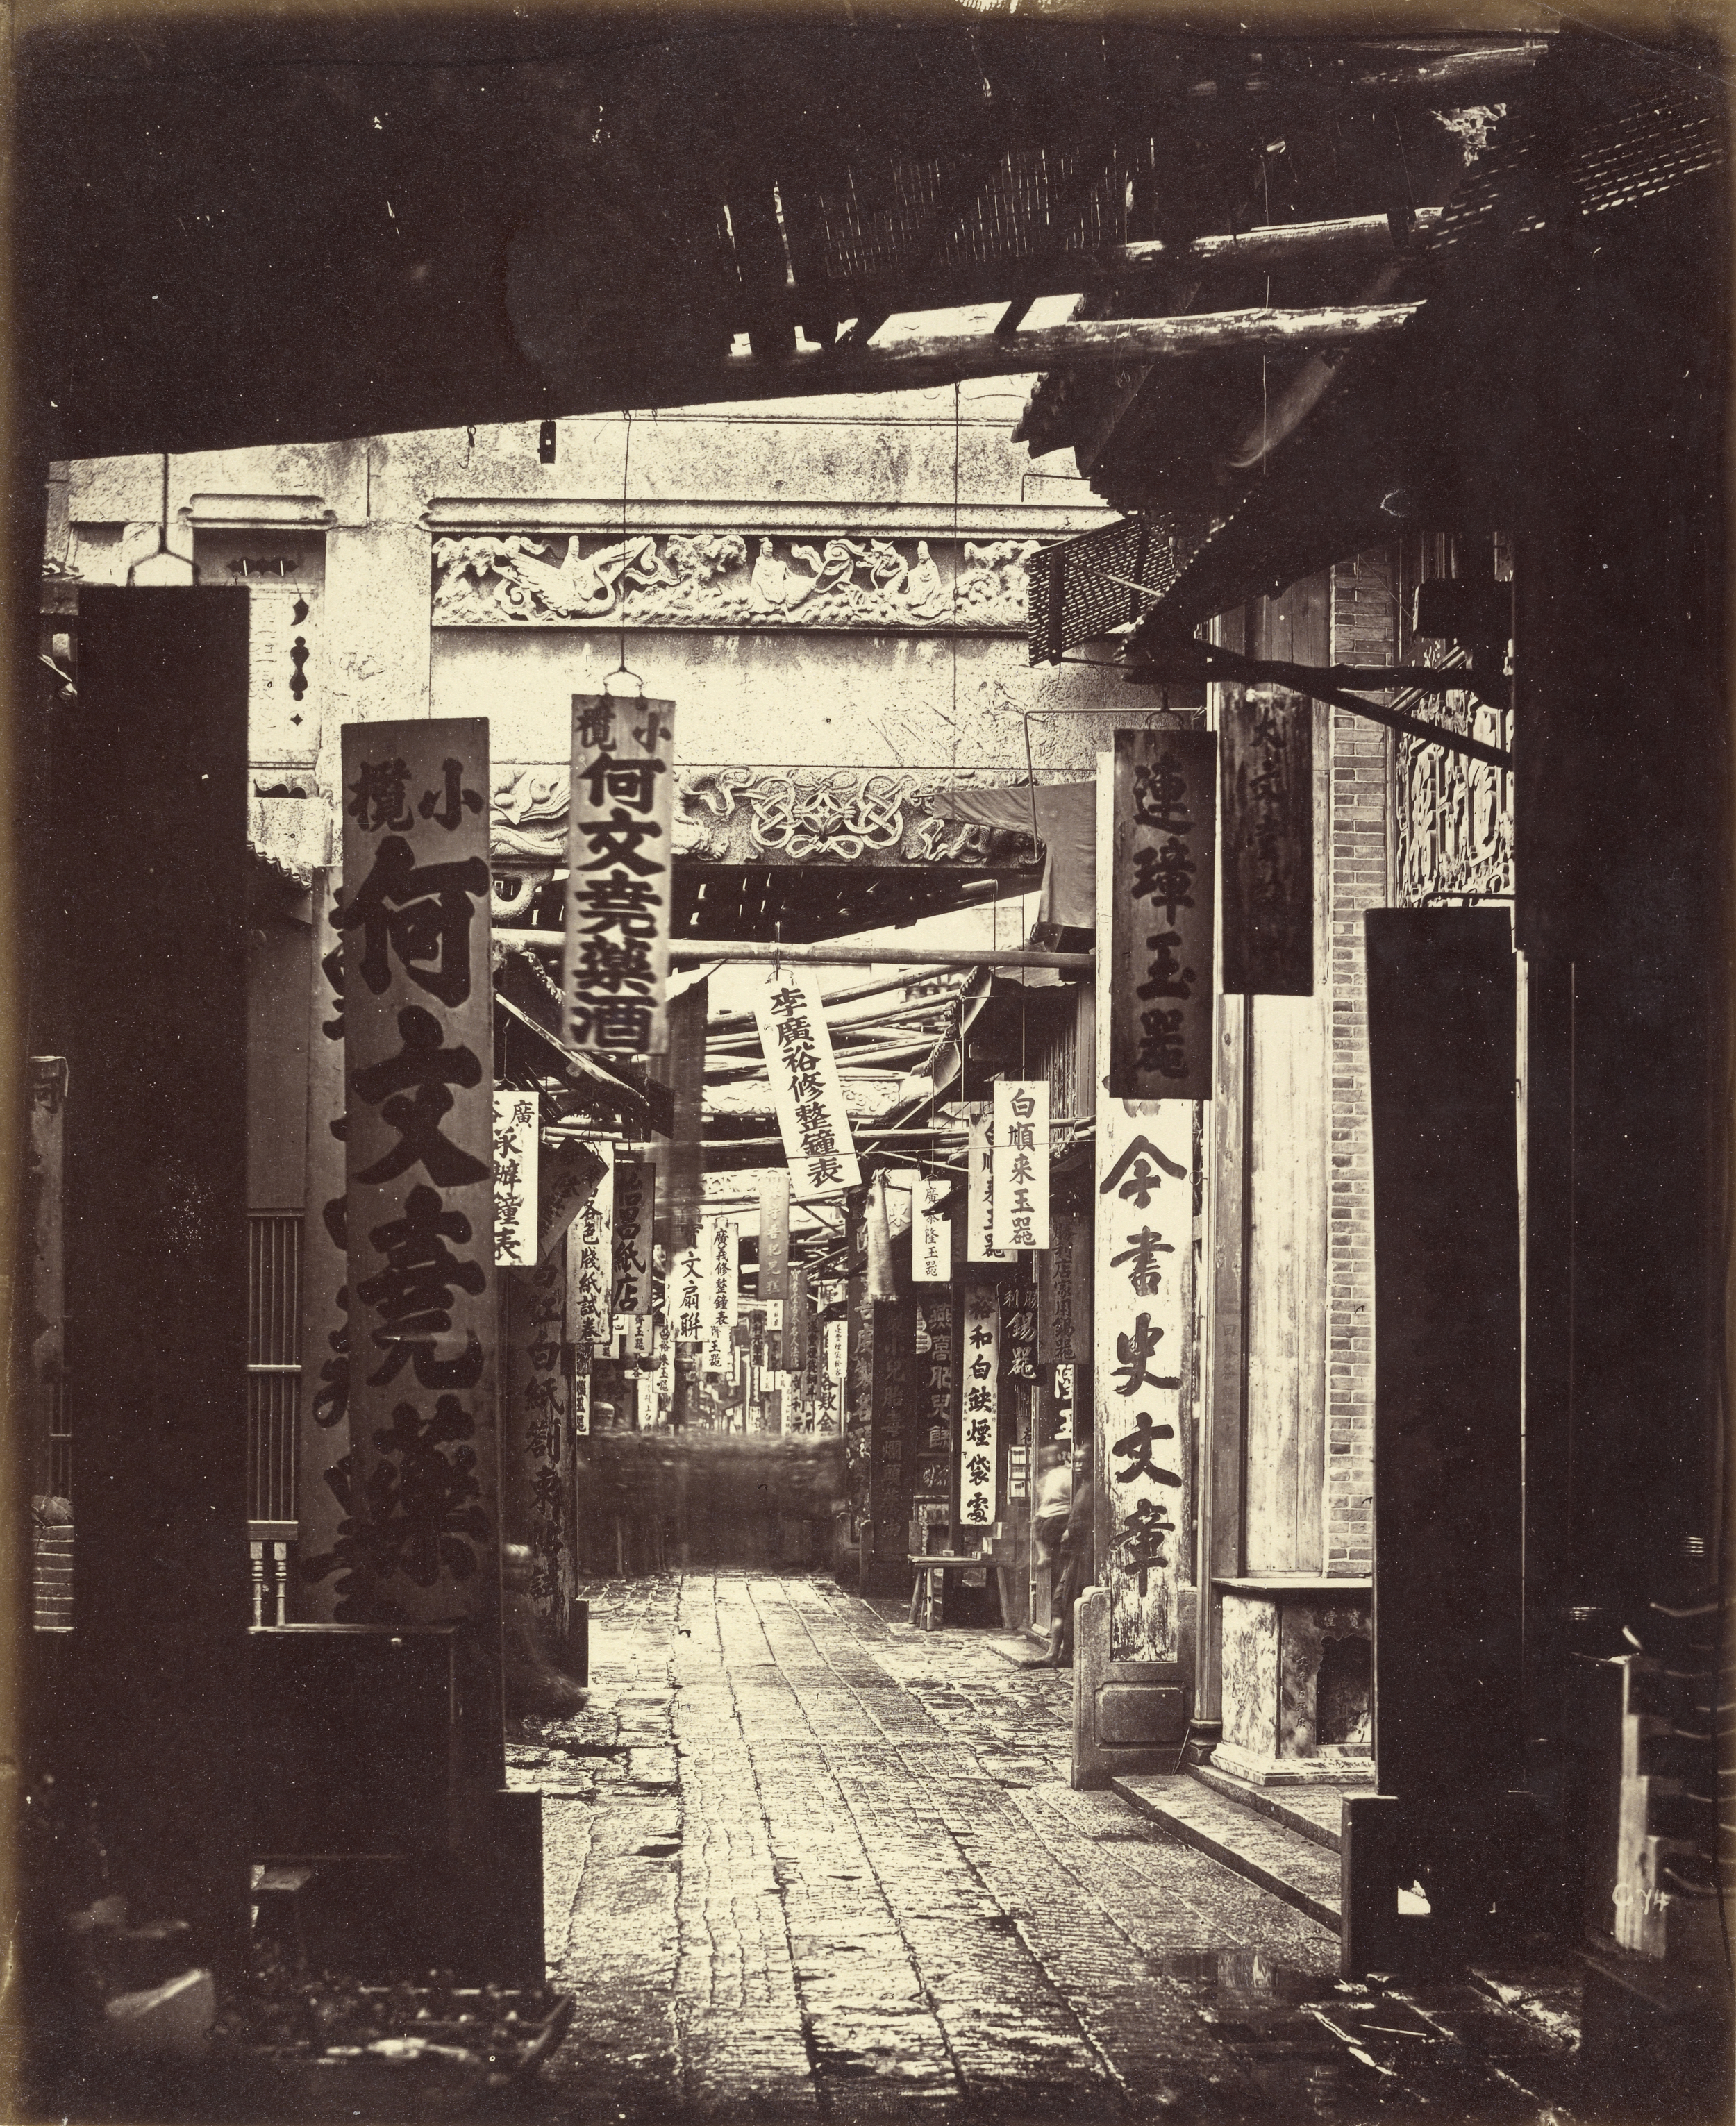 Treasury Street, Canton, 1860, Albumen silver print, 30.5 x 25 cm. The J. Paul Getty Museum, Los Angeles